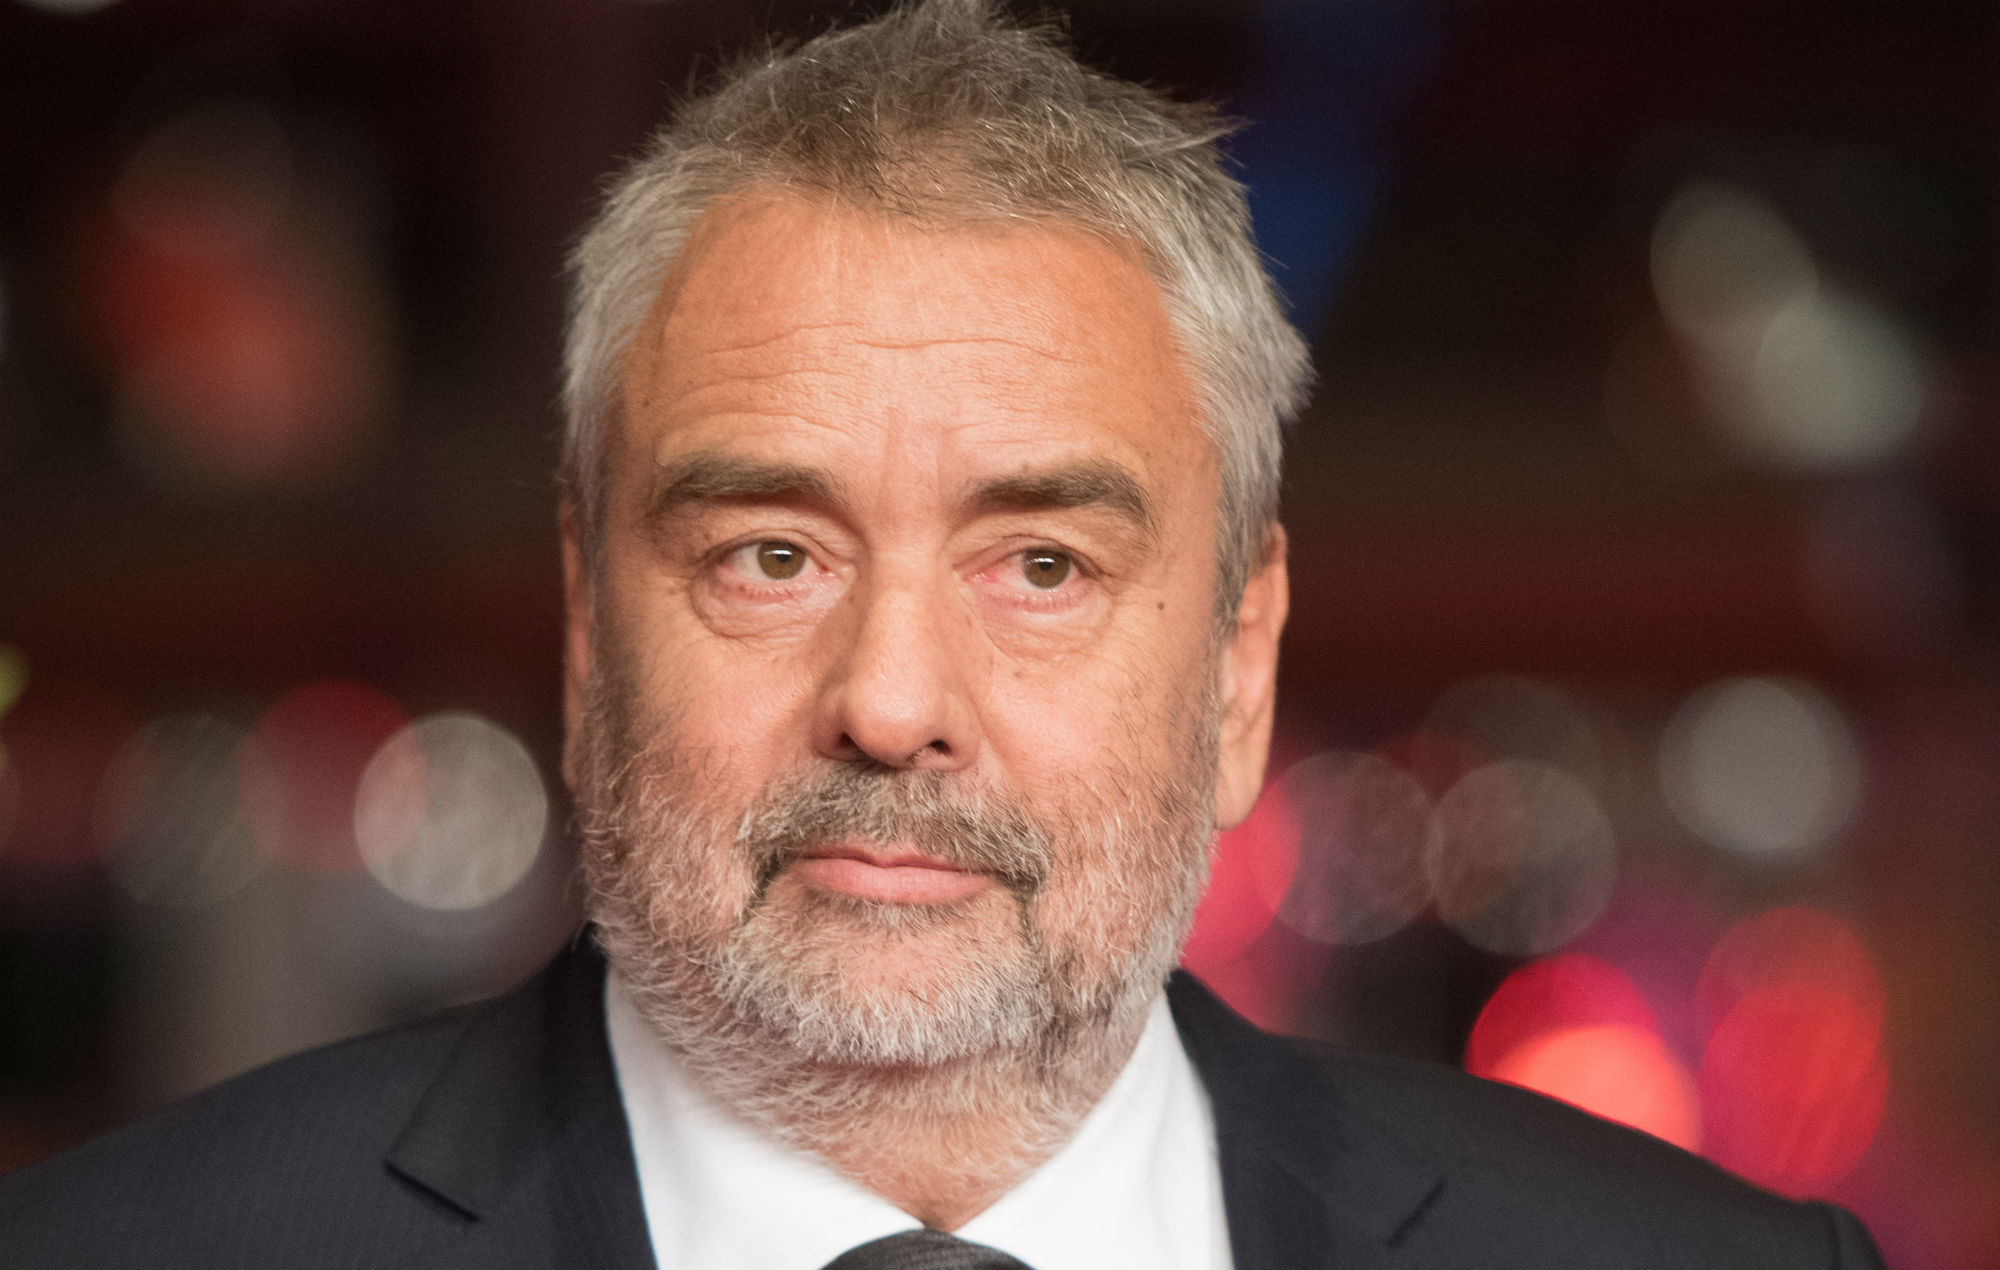 Film director Luc Besson denies rape allegations